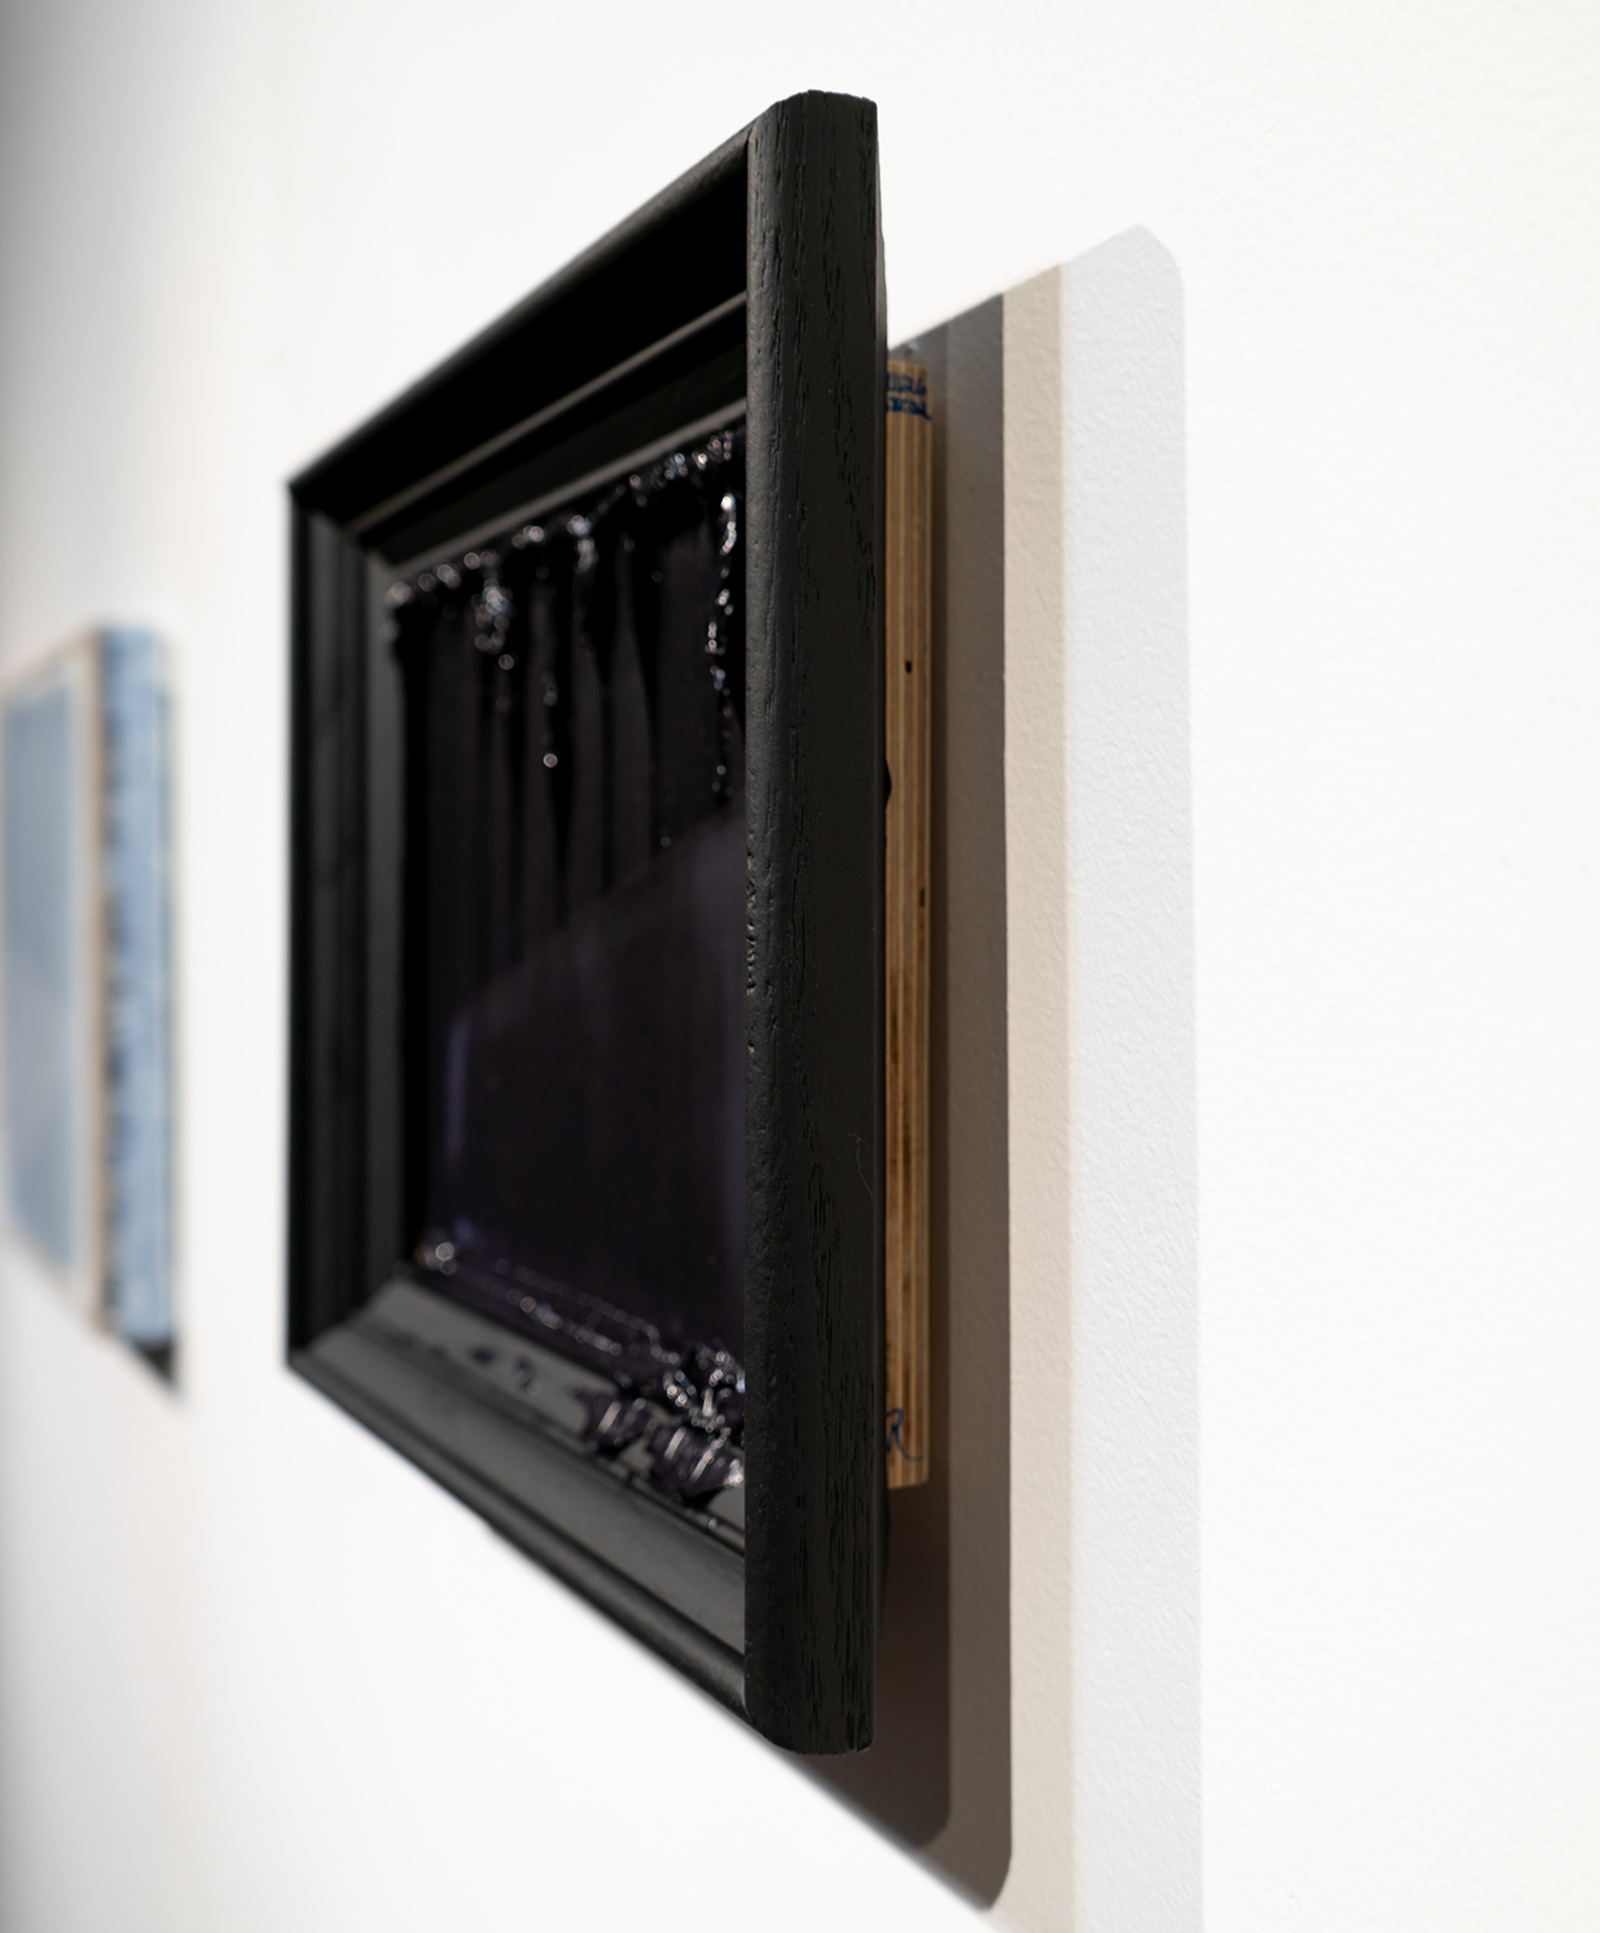 Randy Gibson | Rational Wedge 9:4 (Found) | 2018 | 32x27x6.5 cm | Oil on Plywood in Found Frame, Spraypaint